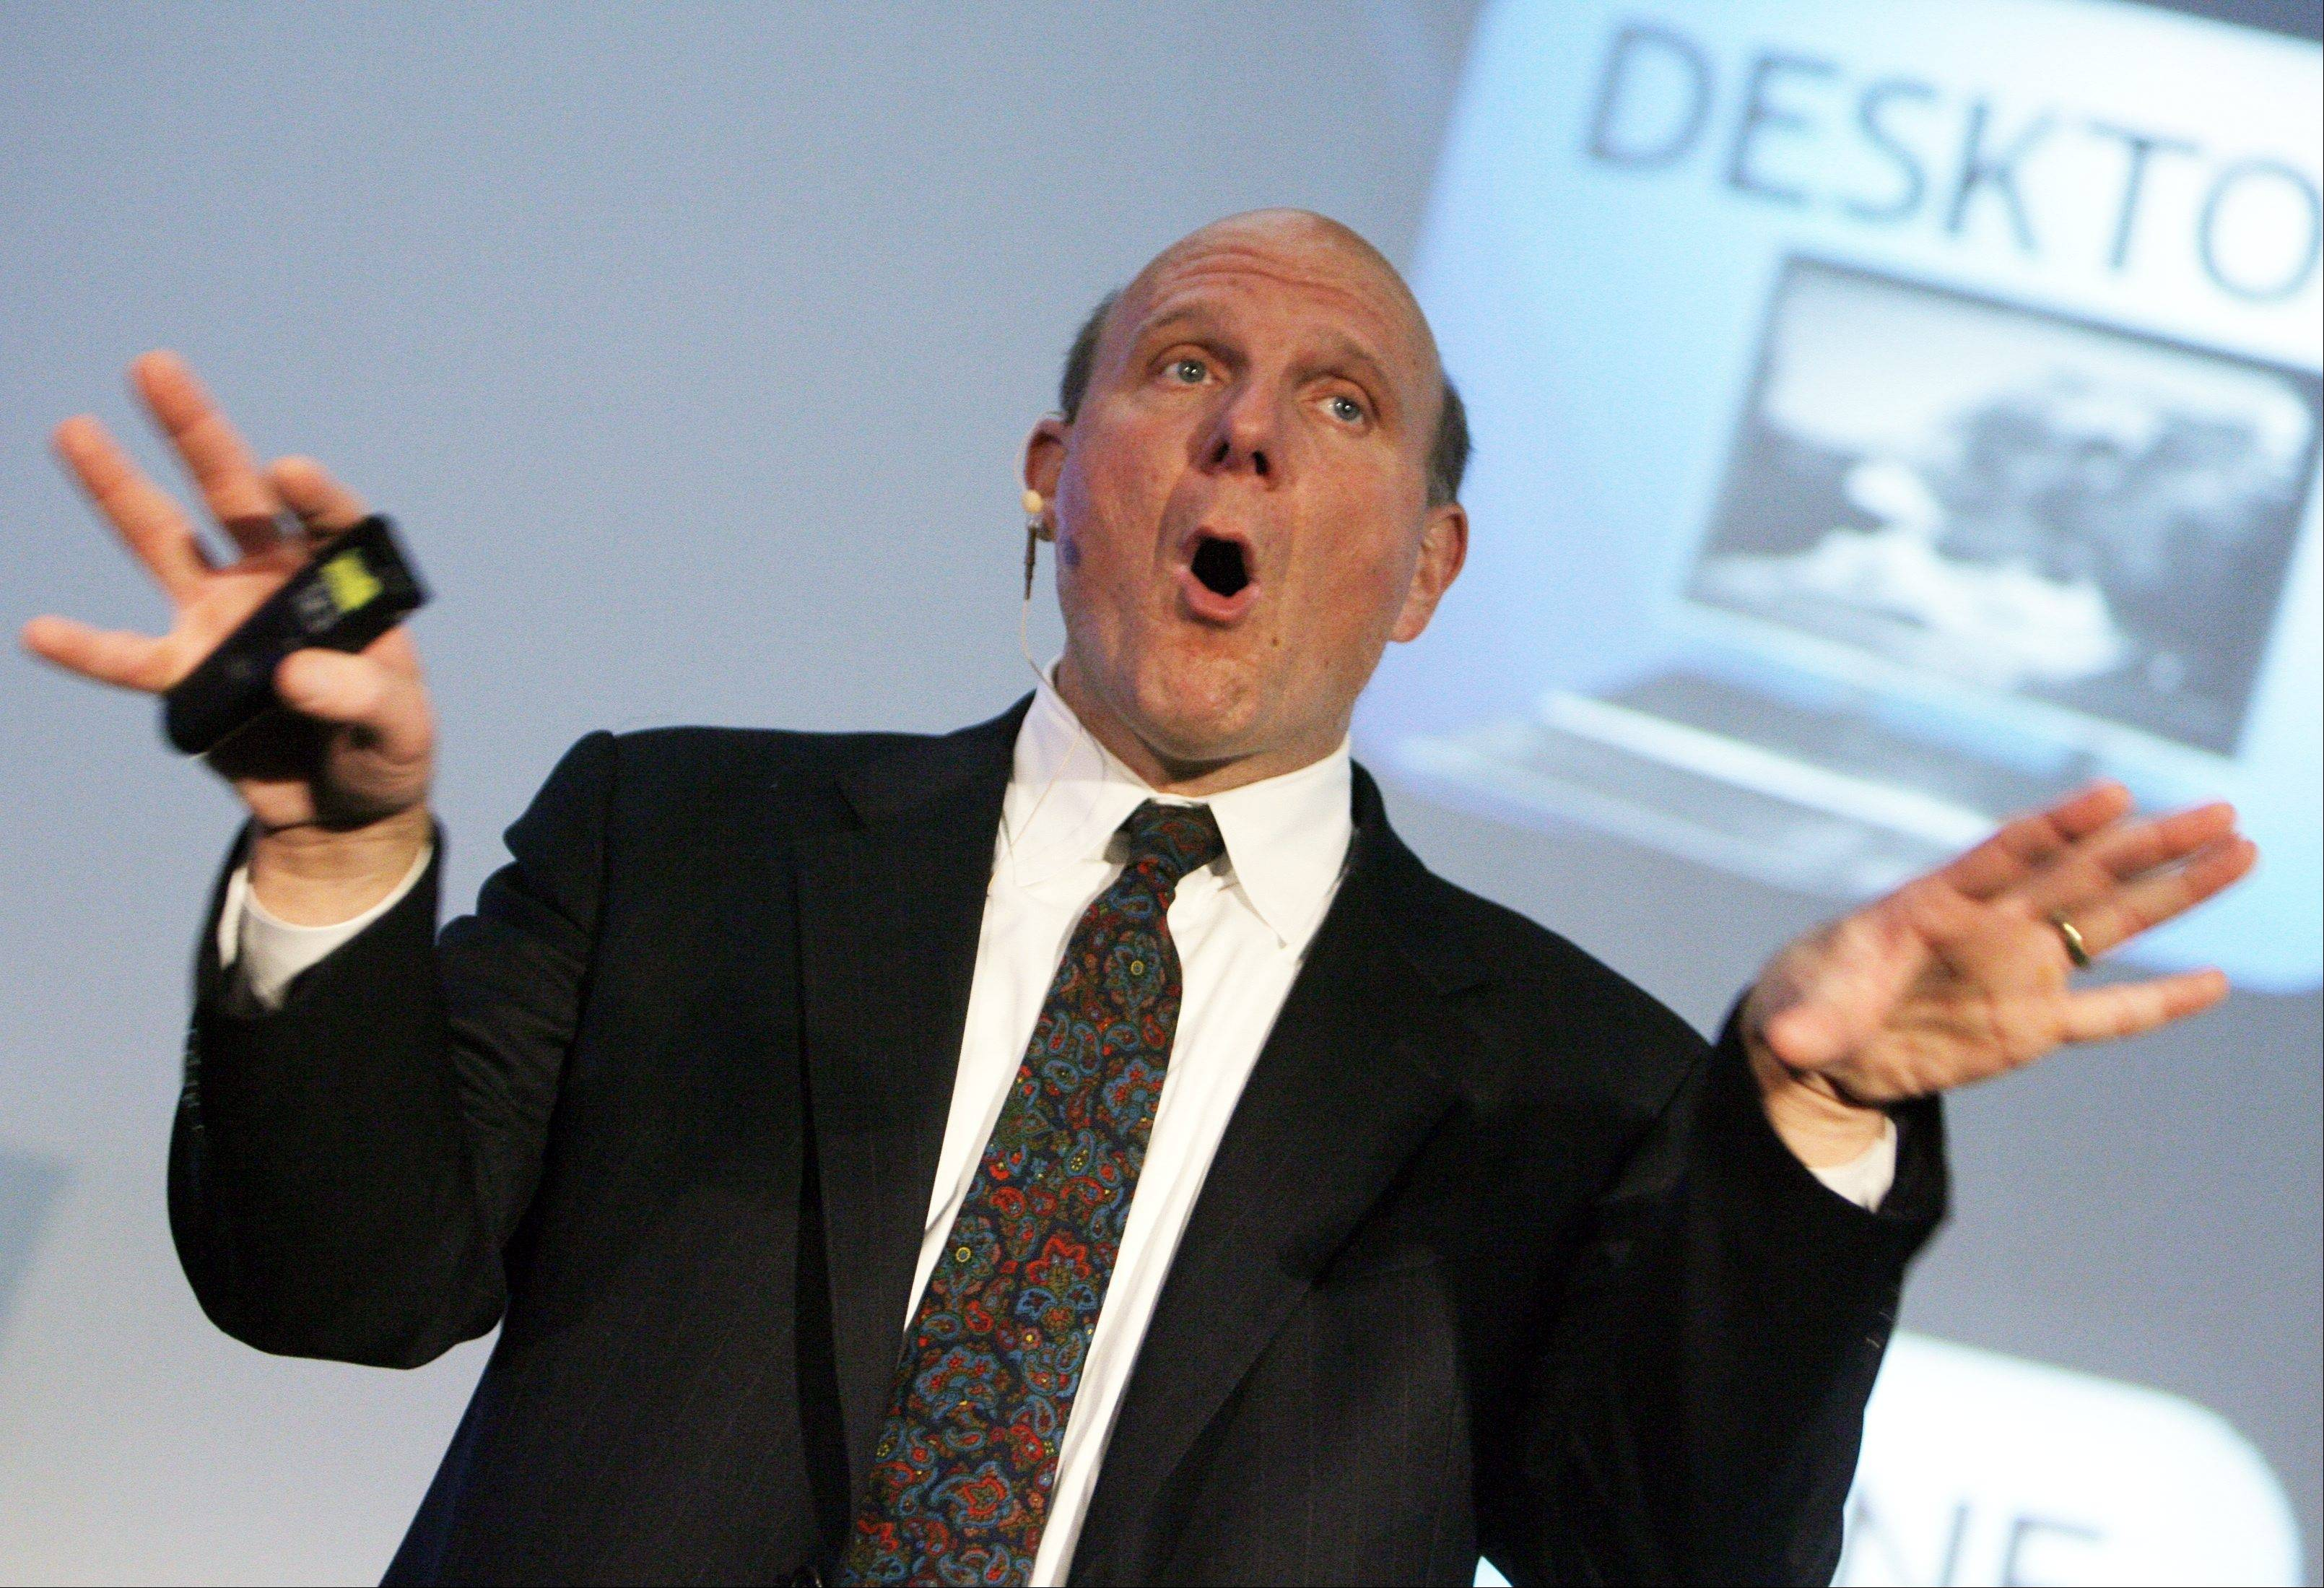 Steve Ballmer, CEO Microsoft, speaks about the �Next Generation Internet� during a presentation in Zurich, Switzerland.